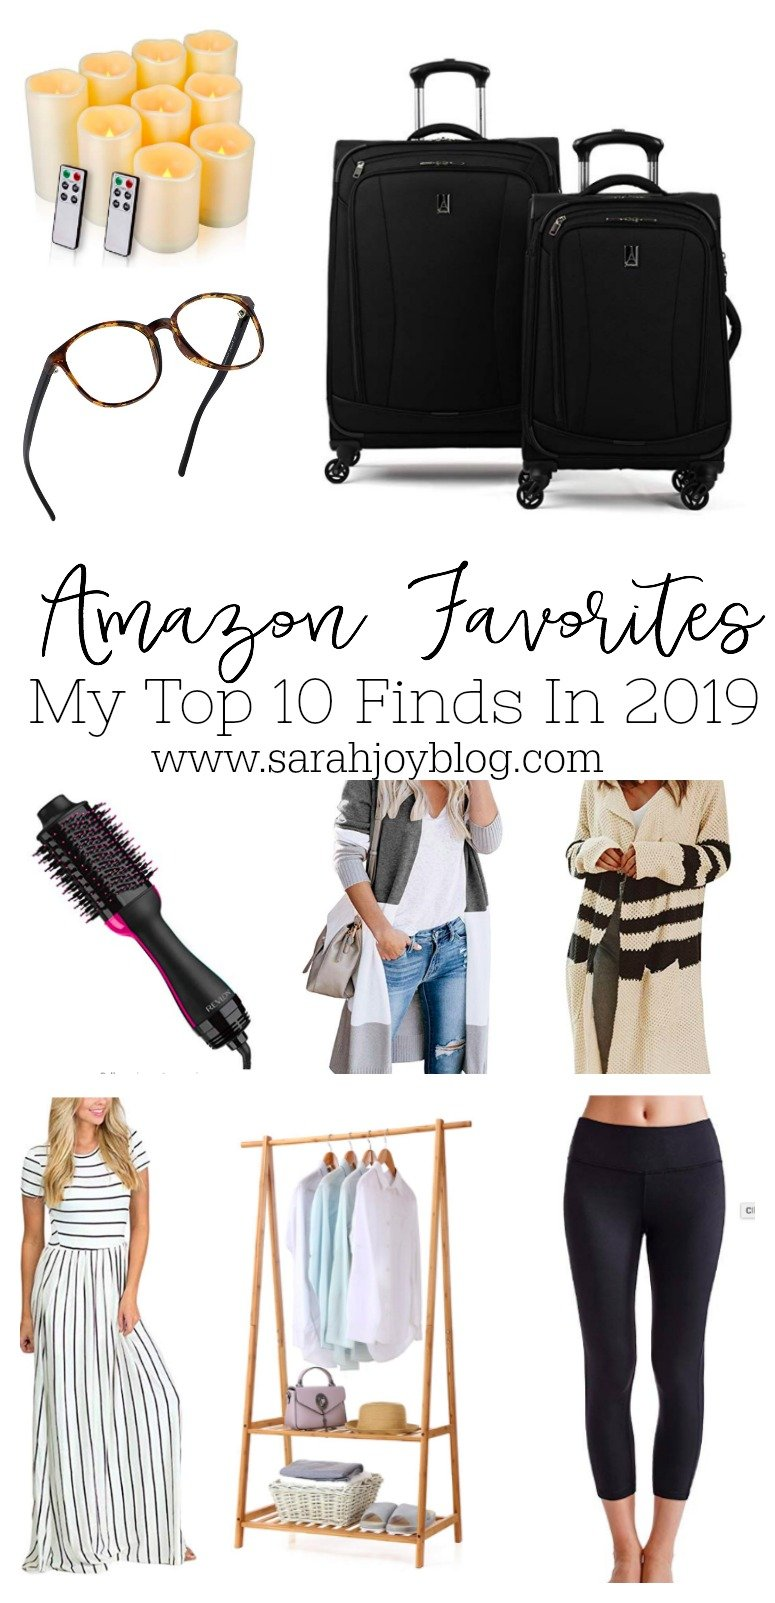 Amazon Favorites from 2019. My Top 10 Amazon Finds in 2019.